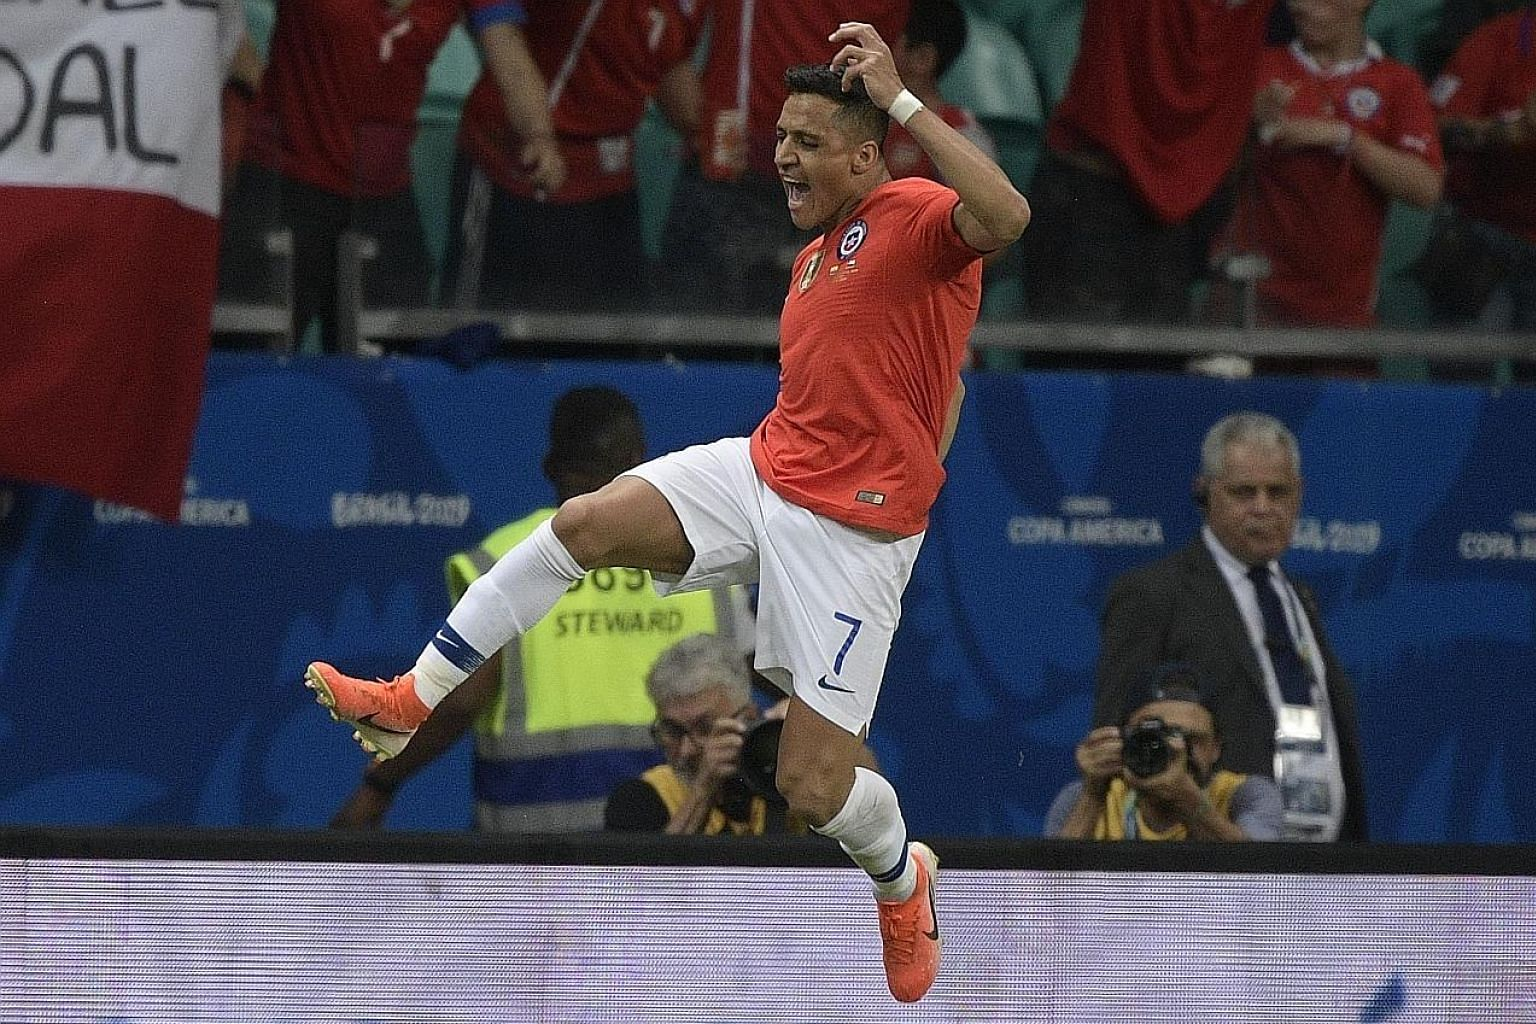 A delighted Alexis Sanchez after scoring for Chile in their 2-1 win over Ecuador during their Copa America match on Friday. PHOTO: AGENCE FRANCE-PRESSE